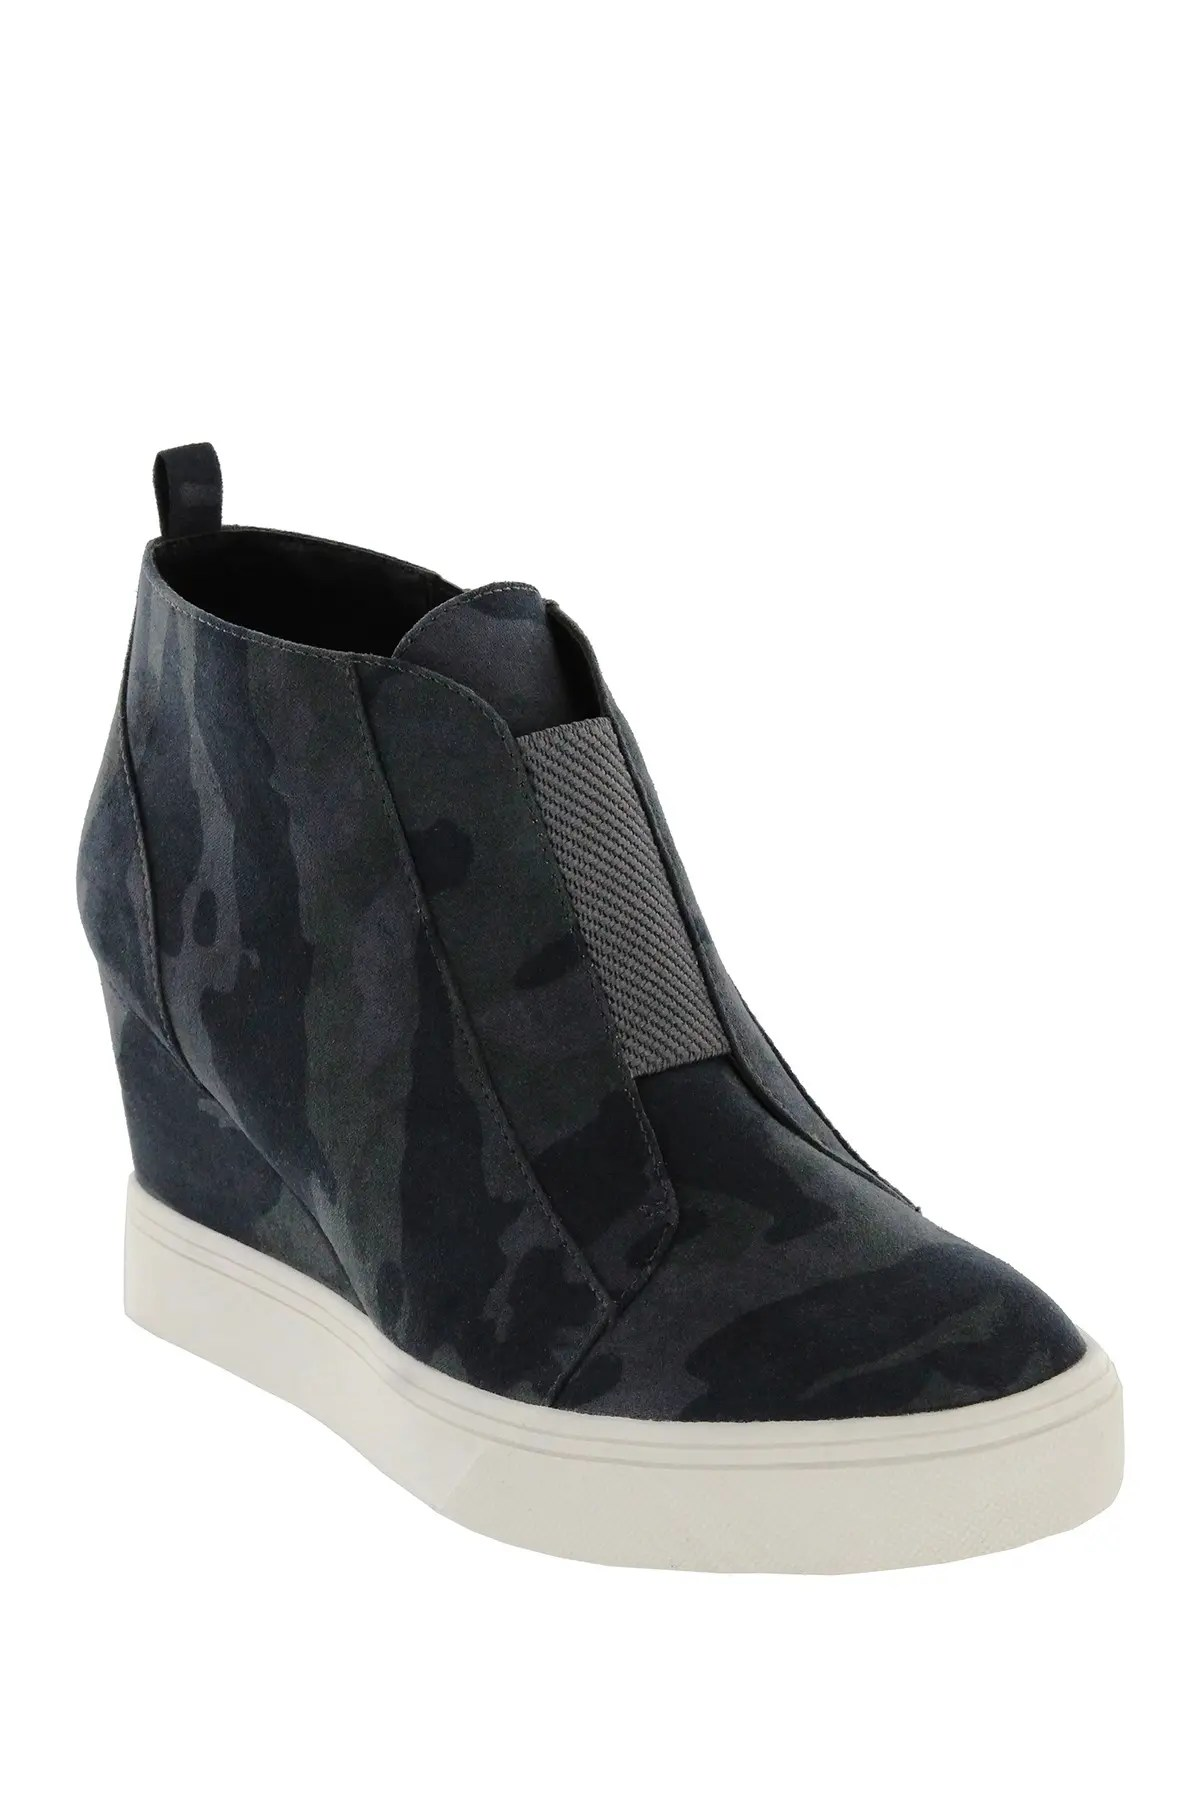 sneakers for women clearance